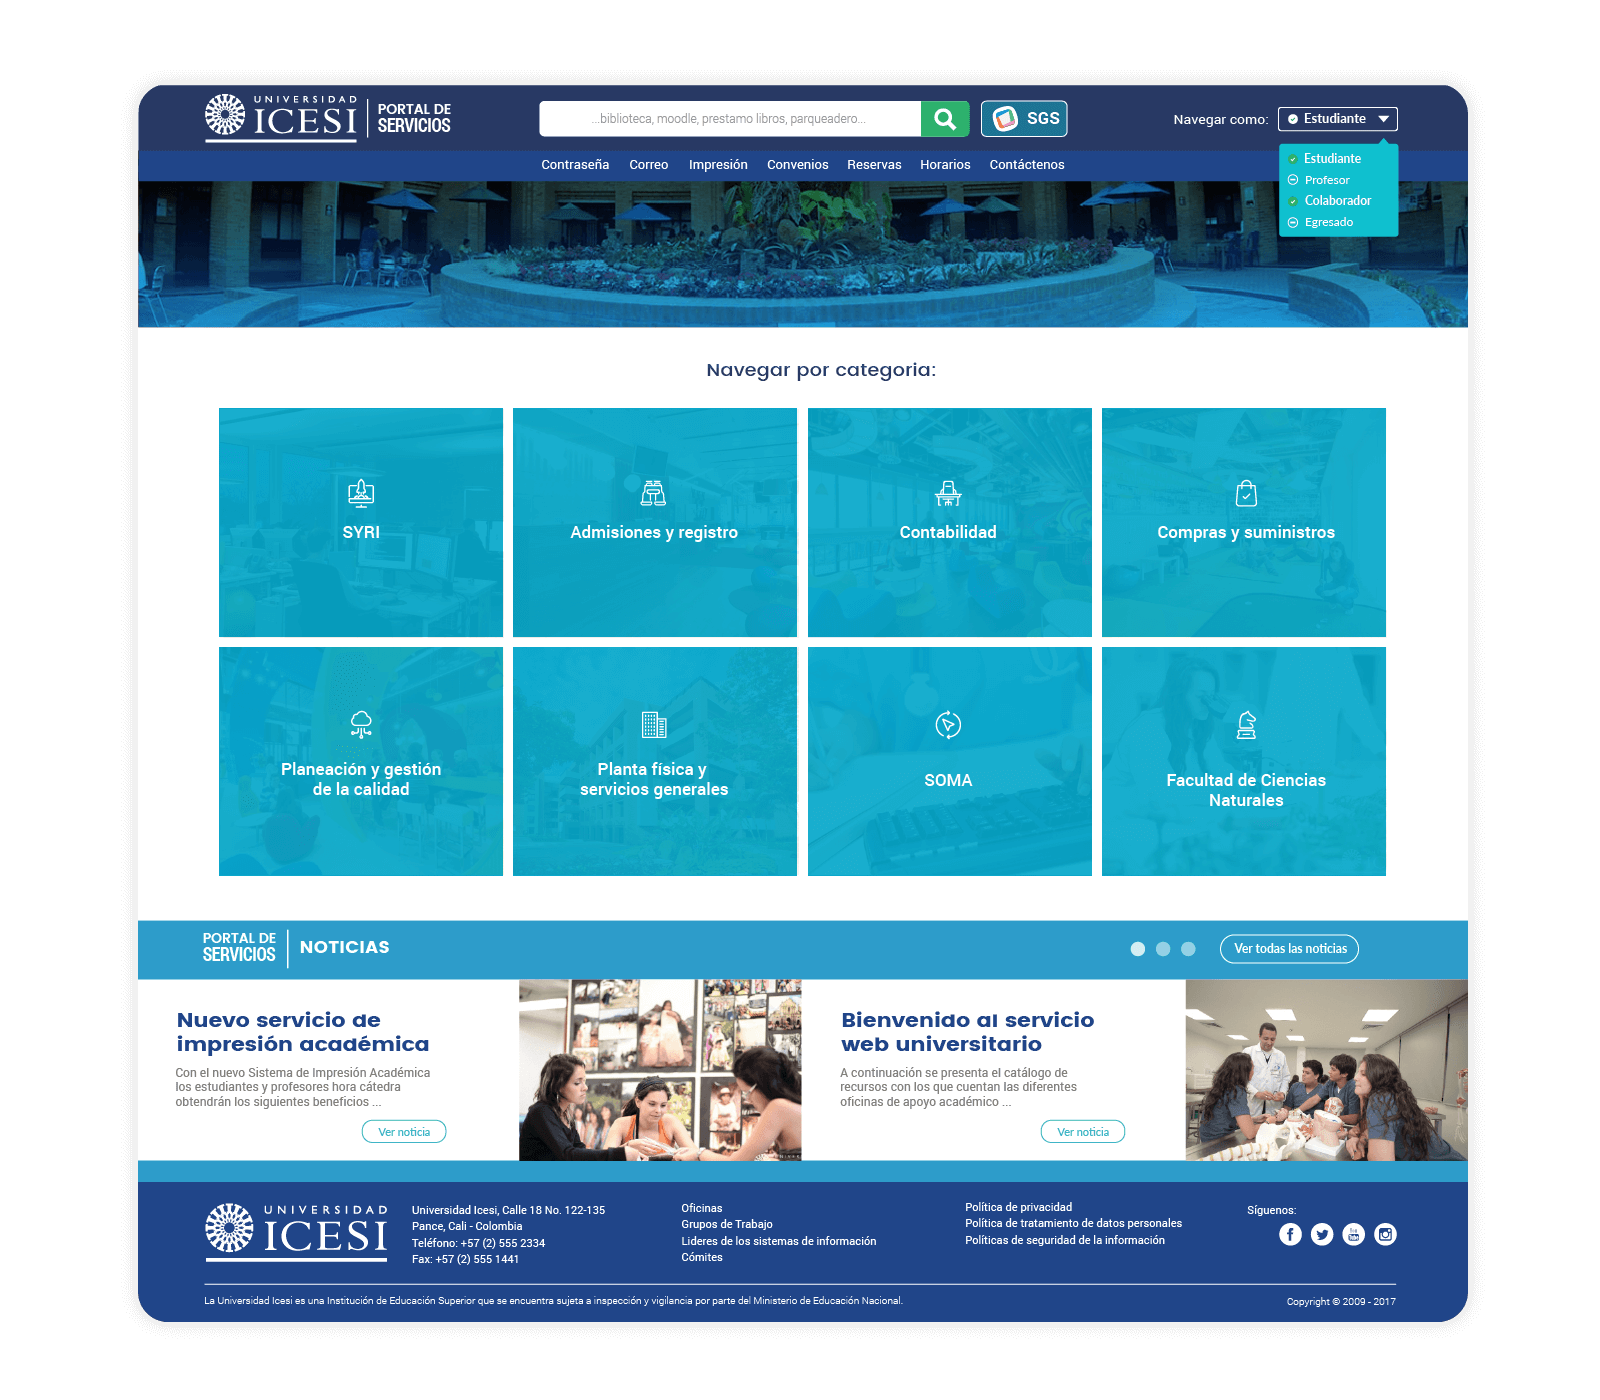 icesi-portal-of-services